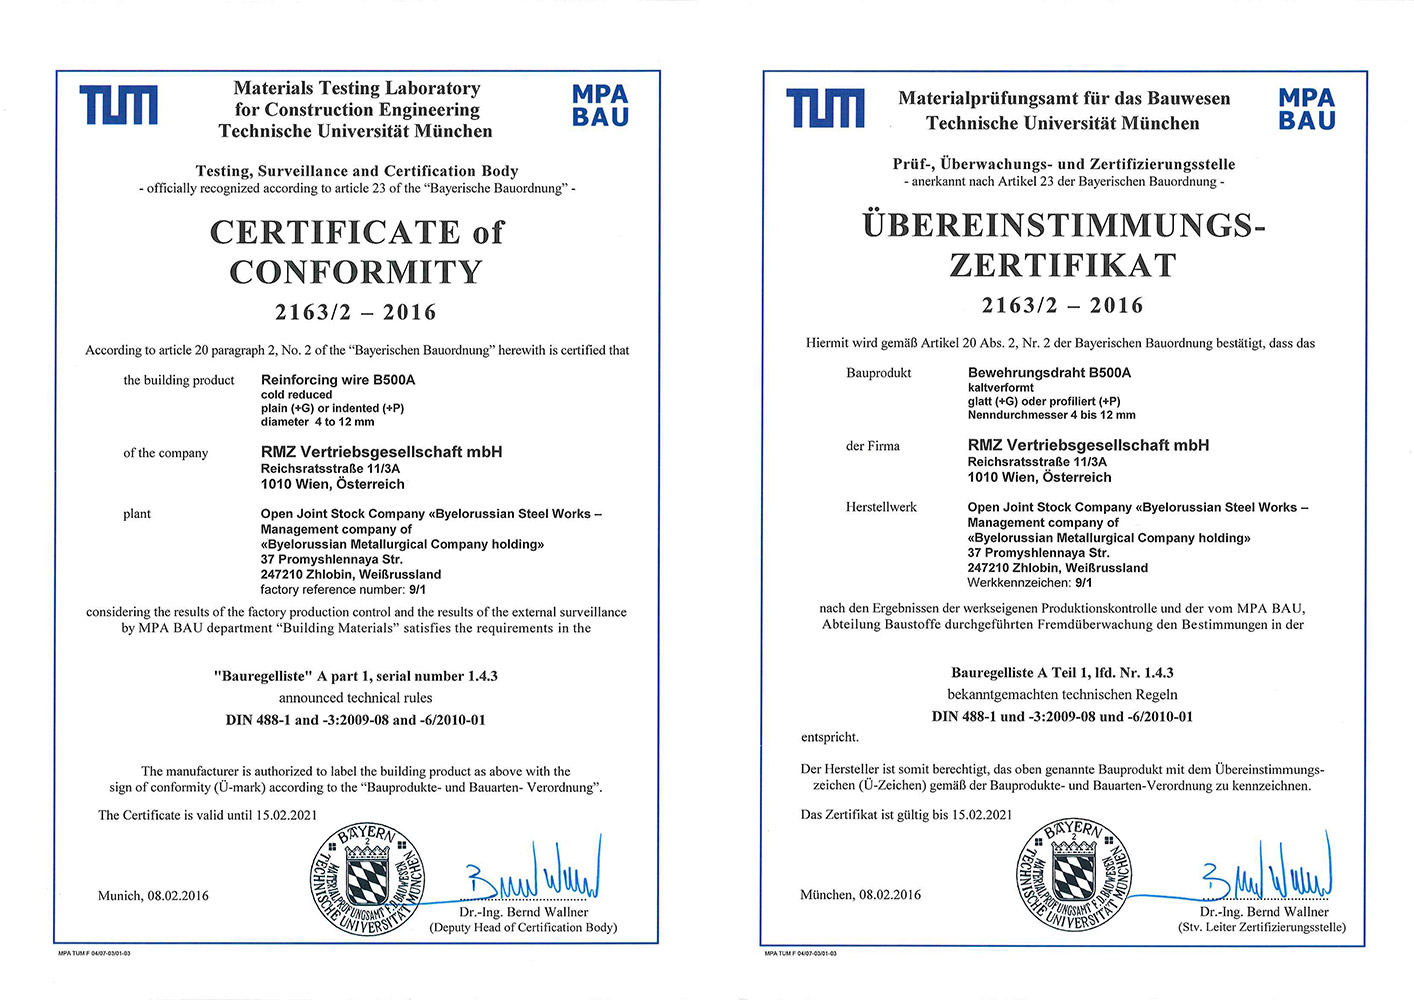 Certificate №2163/2-2016 (MPA BAU,Germany) for production of cold reduced reinforcing wire B500A plain (+G) or indented (+P)  ø 4-12 mm in conformity with DIN 488-3:2009, DIN 488-6:2010 (sign of conformity U)